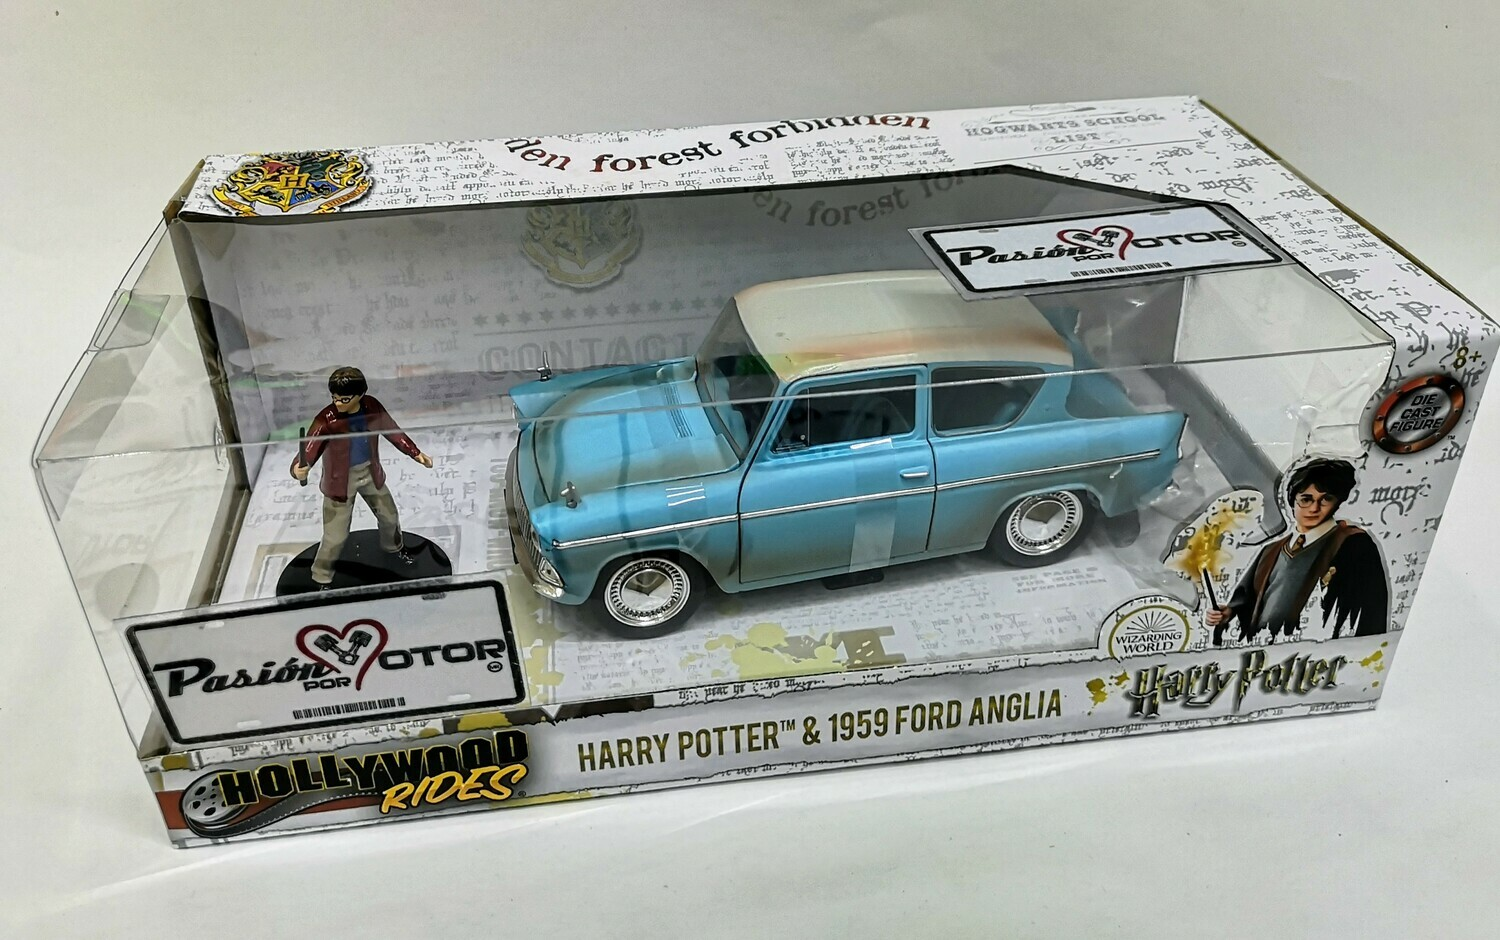 1:24 Ford UK Anglia 1958 & Harry Potter Jada Toys Hollywood Rides